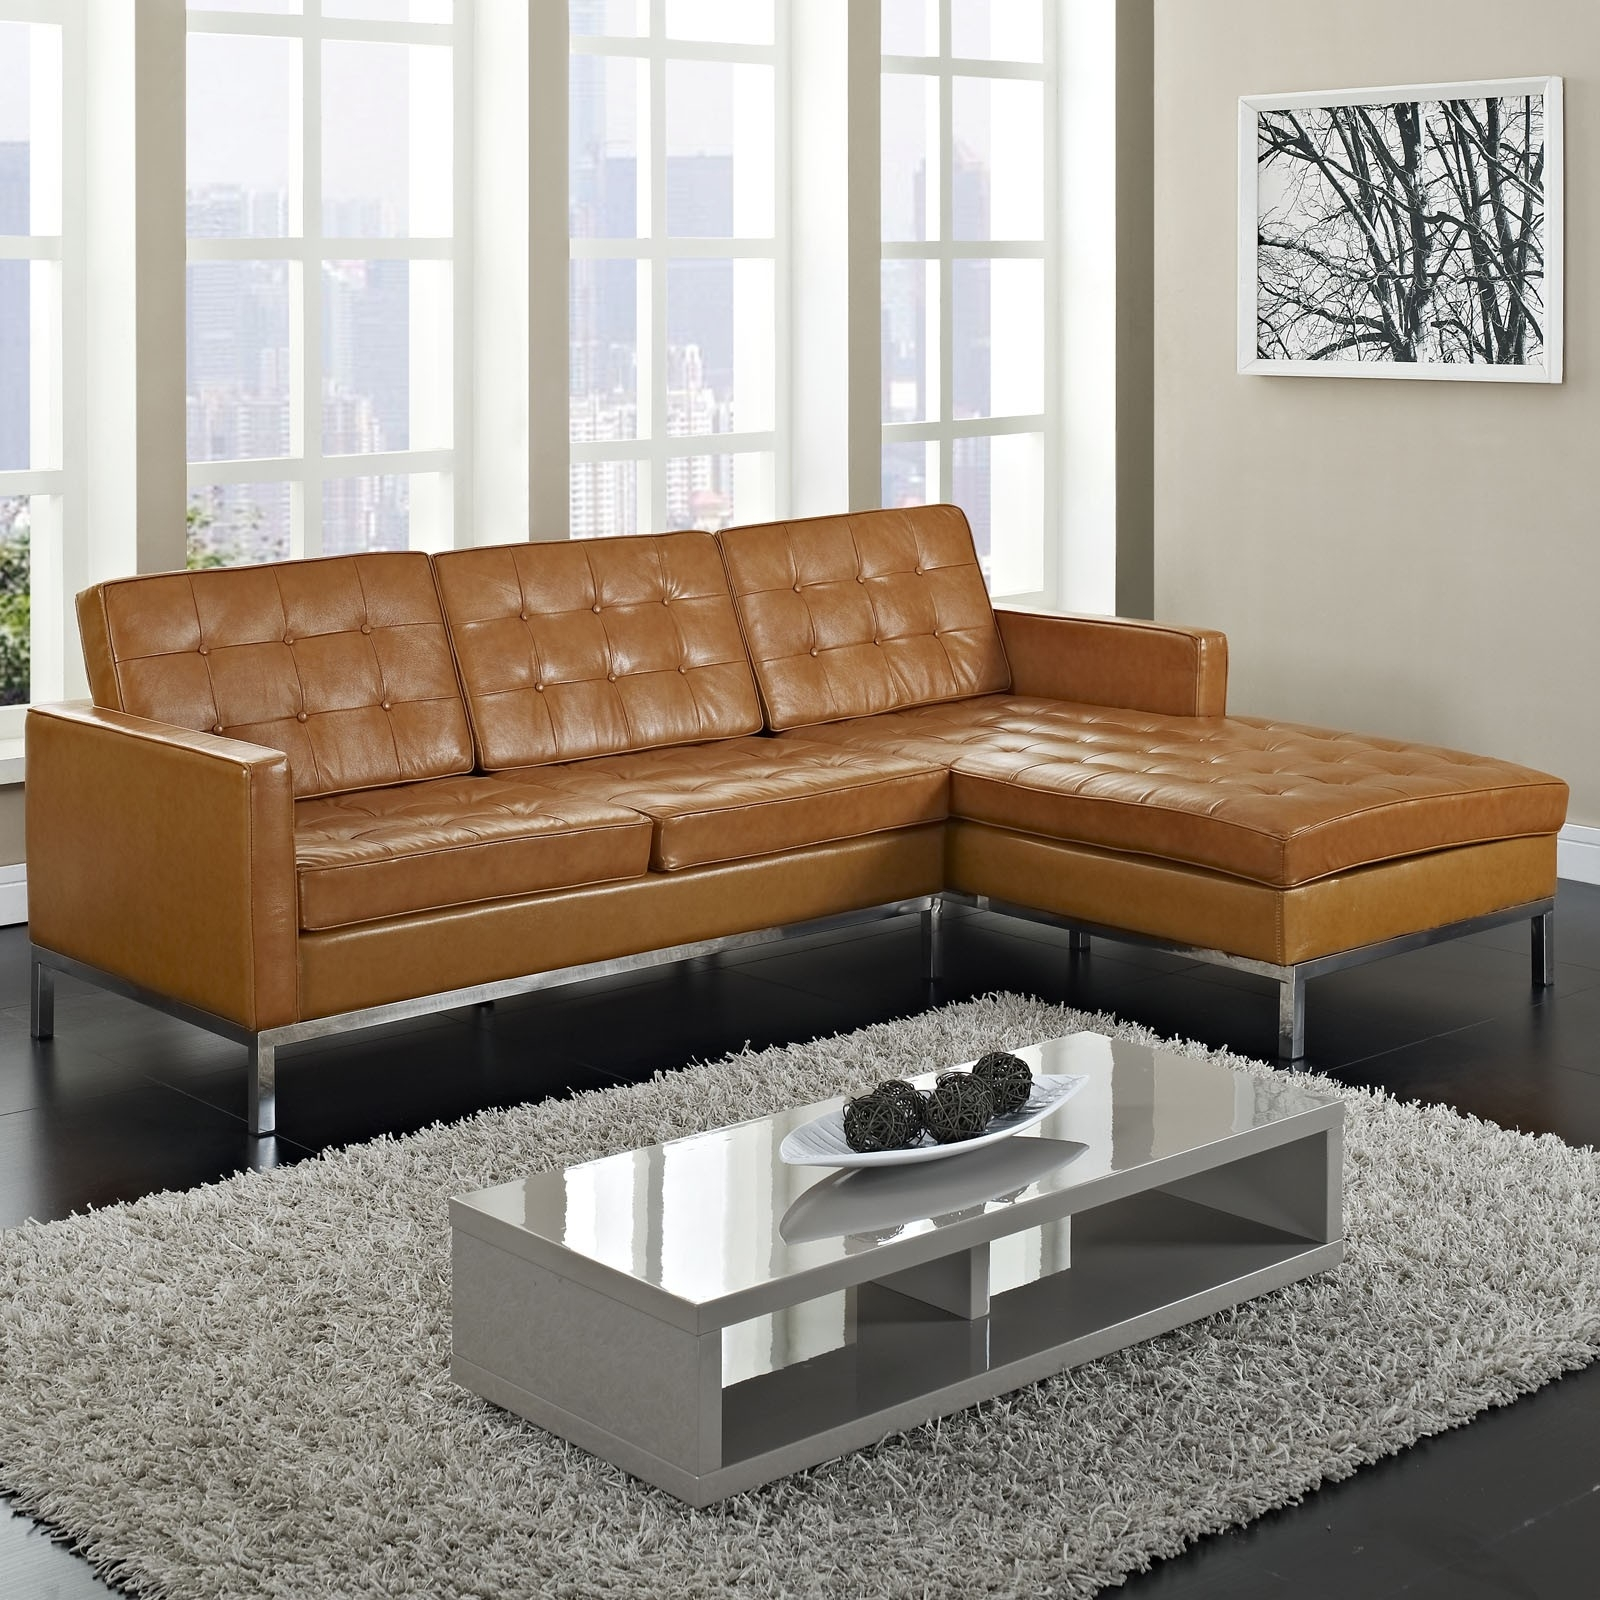 Furniture, Maximizing Small Living Room Spaces With 3 Piece Brown Inside Tufted Sectional Sofas (View 10 of 10)